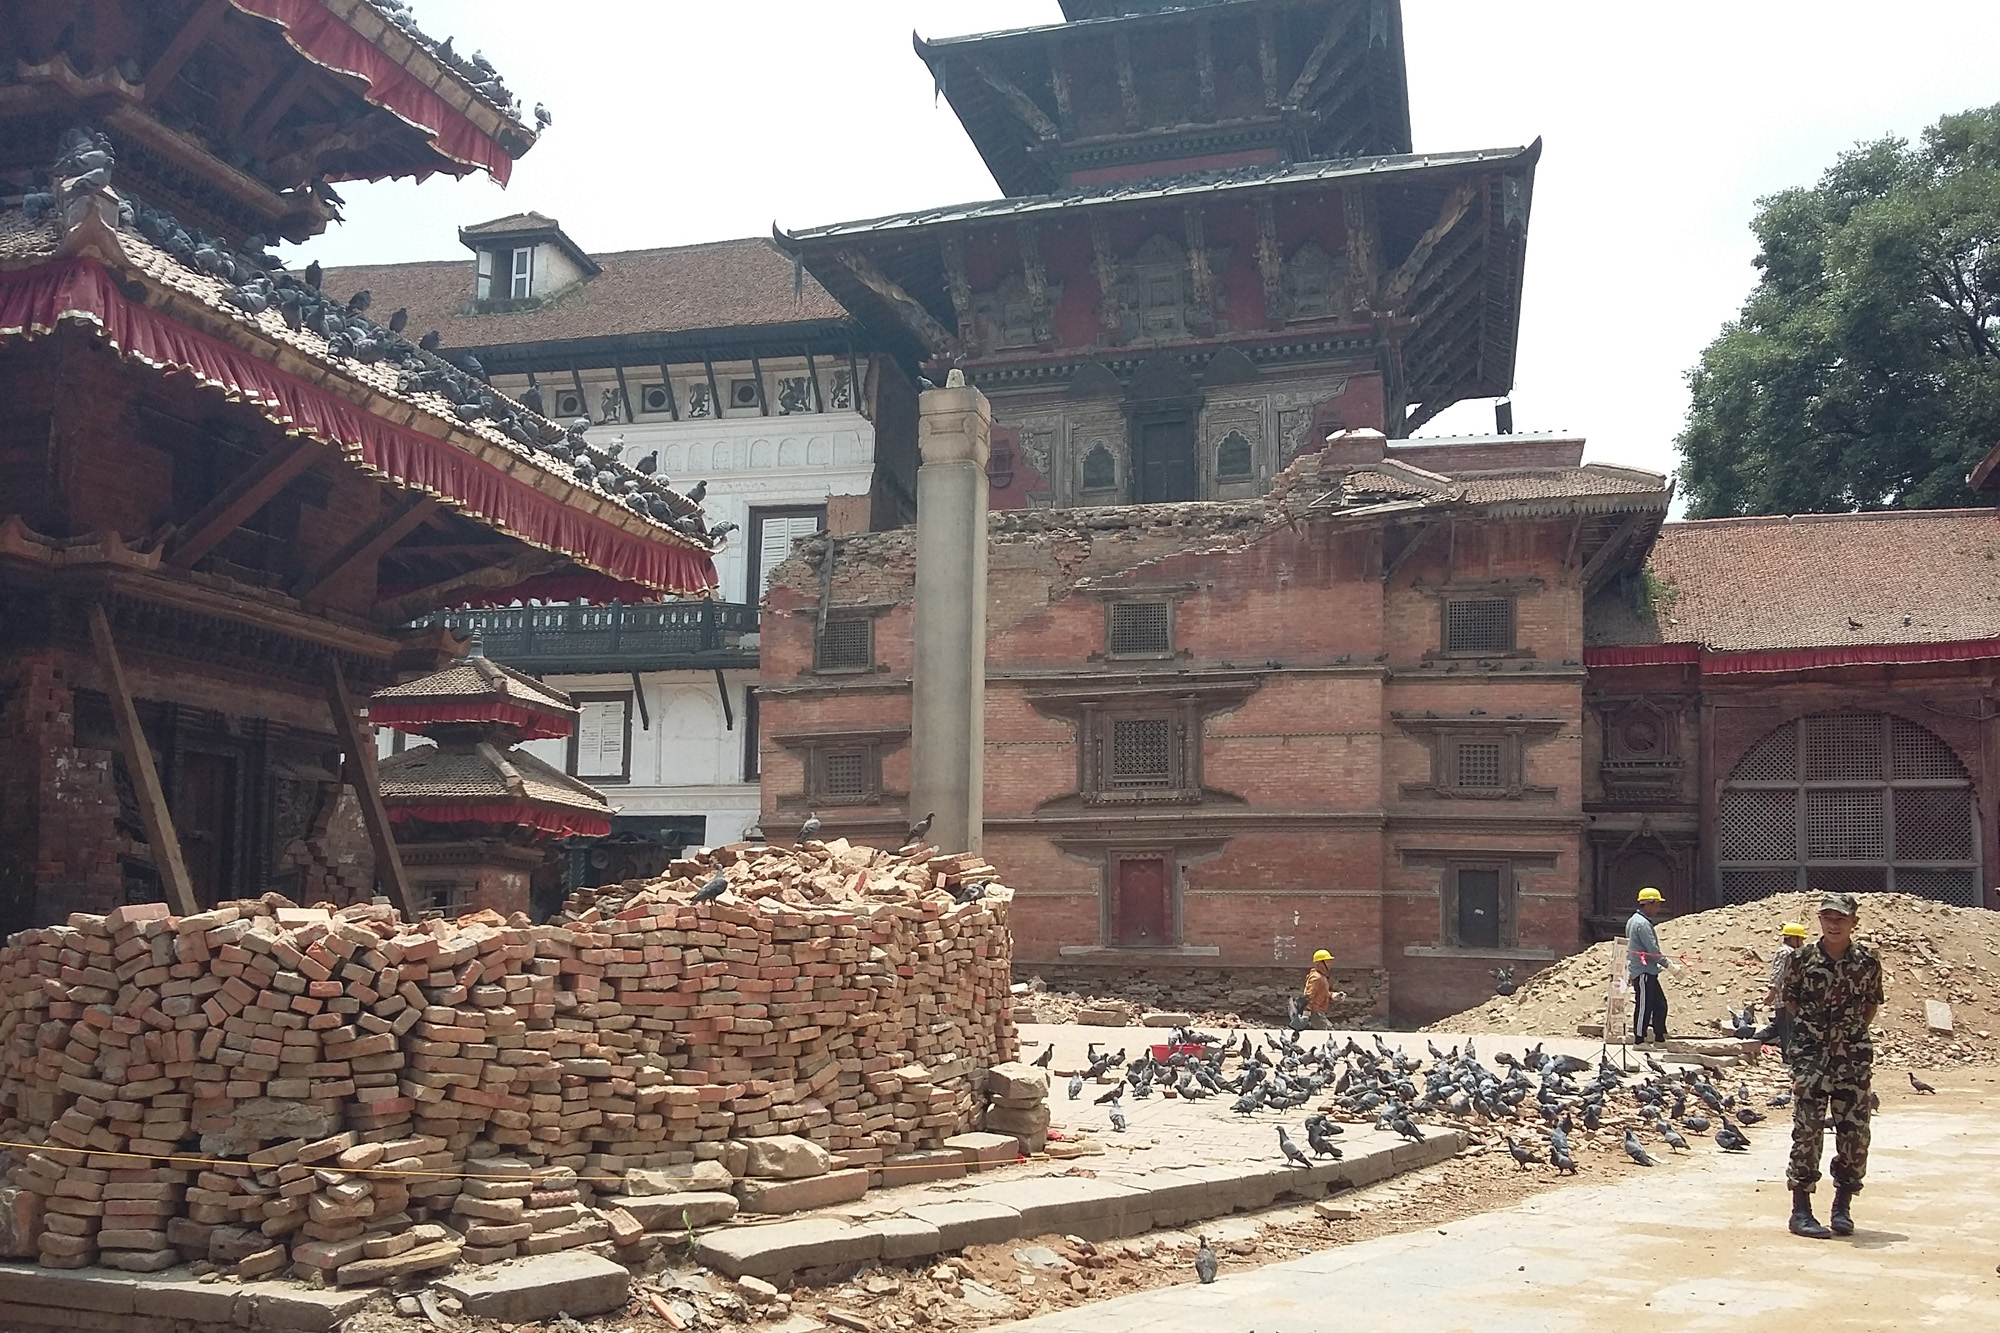 Heritage Disaster Tours in Nepal